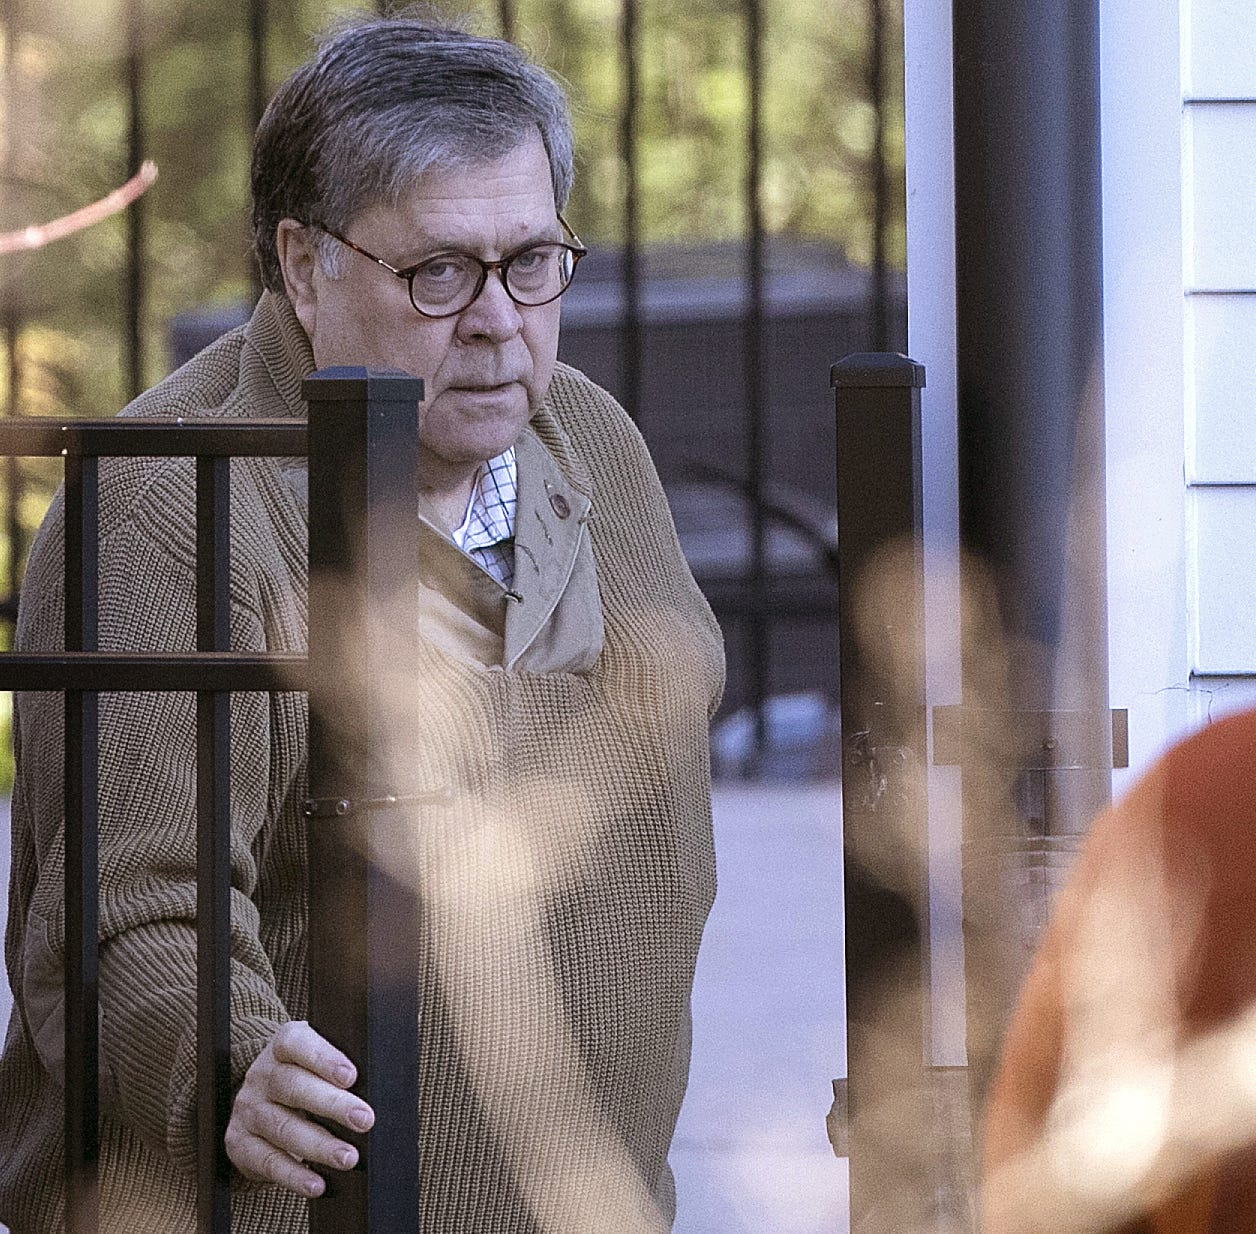 U.S. Attorney General William Barr departs his home March 23, 2019 in McLean, Va.